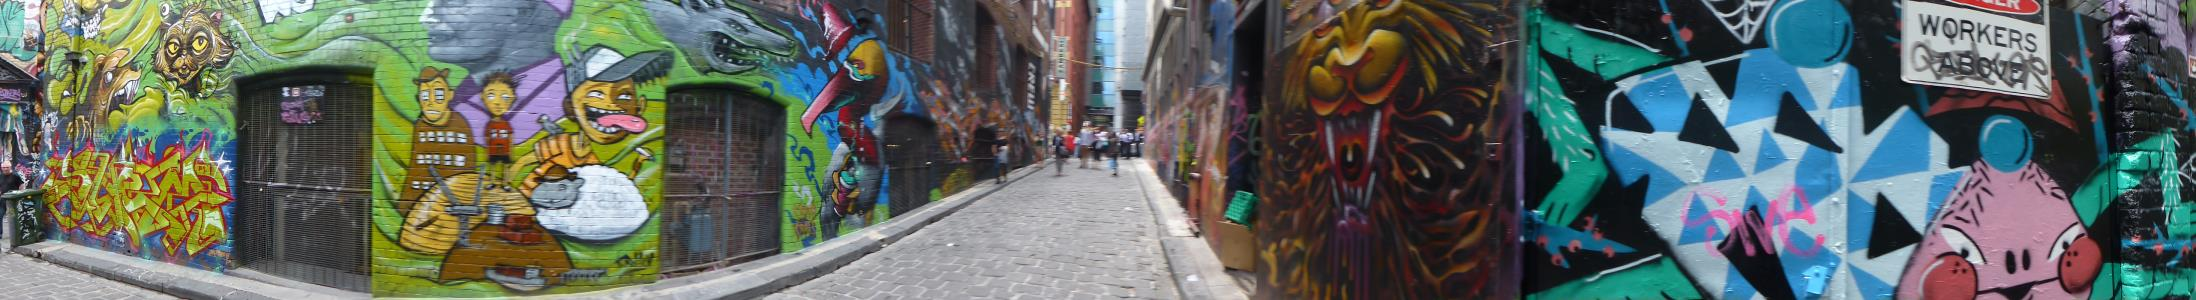 Name: The Graffiti Lanes melbourne Camera make: Panasonic Model: Panasonic Software: Ver.1.0